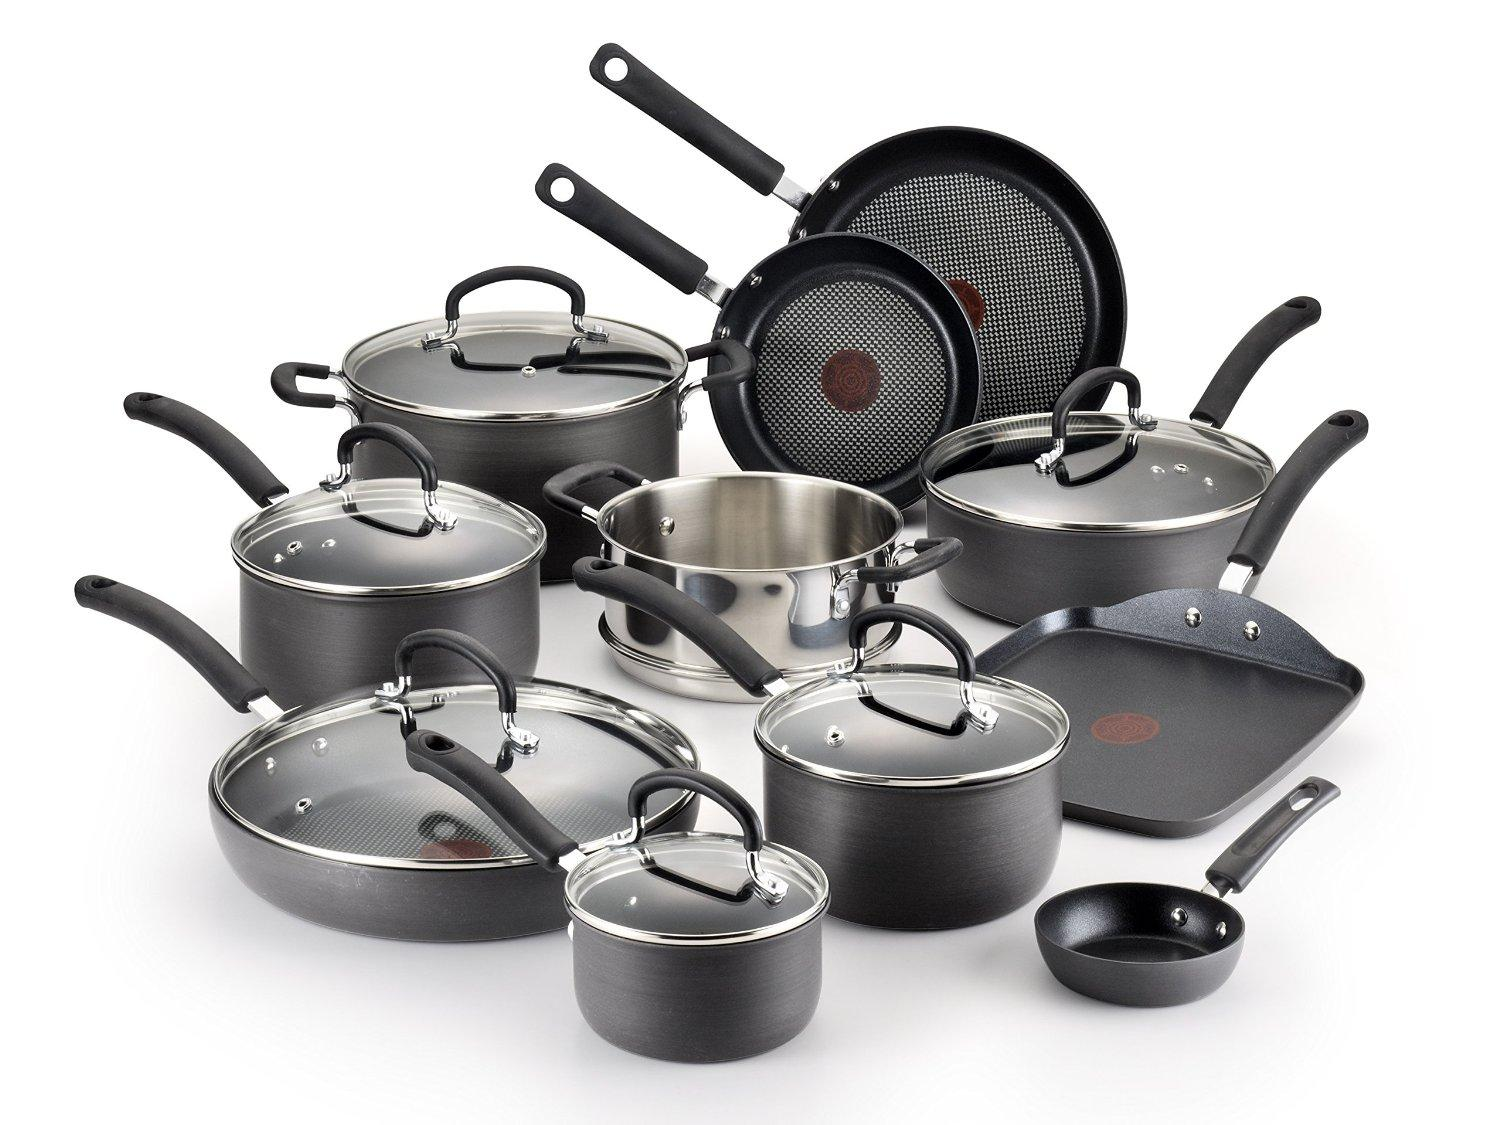 Lowest price! T-fal E918SH Ultimate Hard Anodized Nonstick Dishwasher Safe Oven Safe Cookware Set, 17-Piece